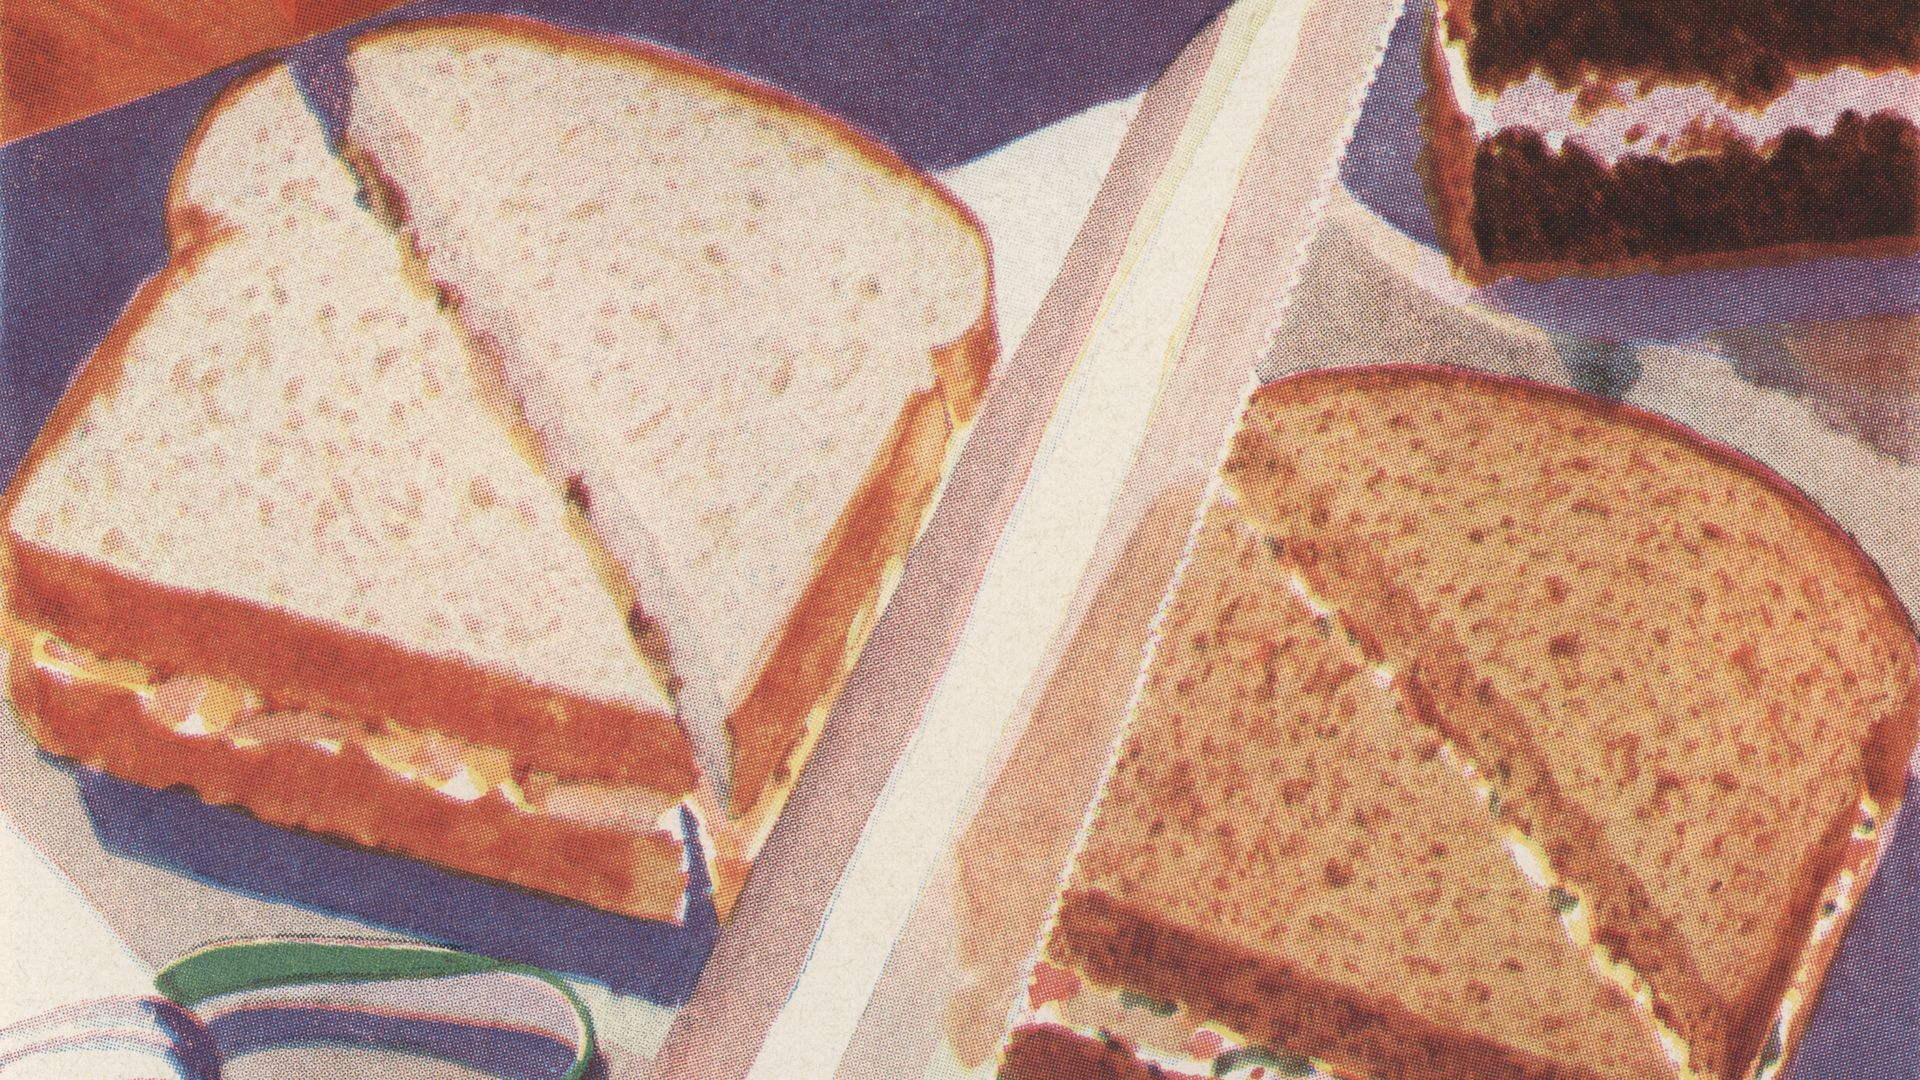 illustration of lunch sandwiches.